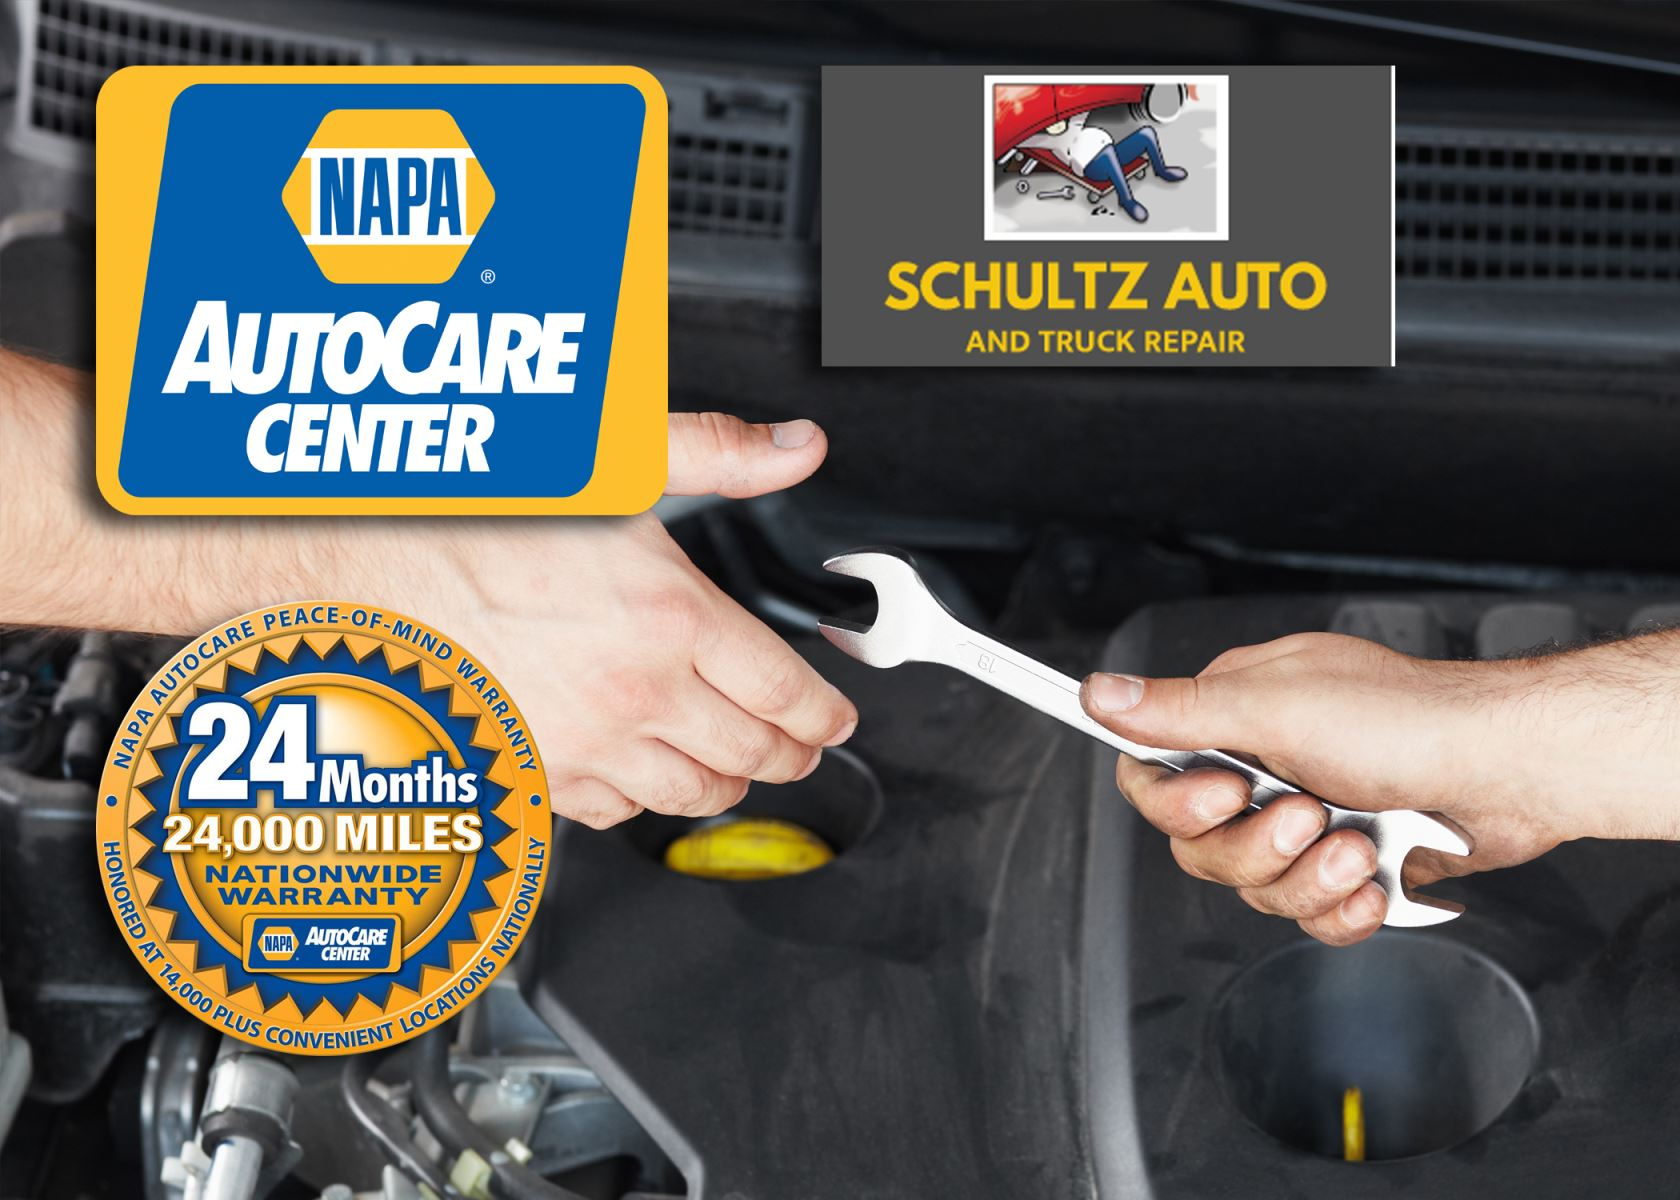 Longtime Schultz Auto and Truck Repair Customer Shares Feedback